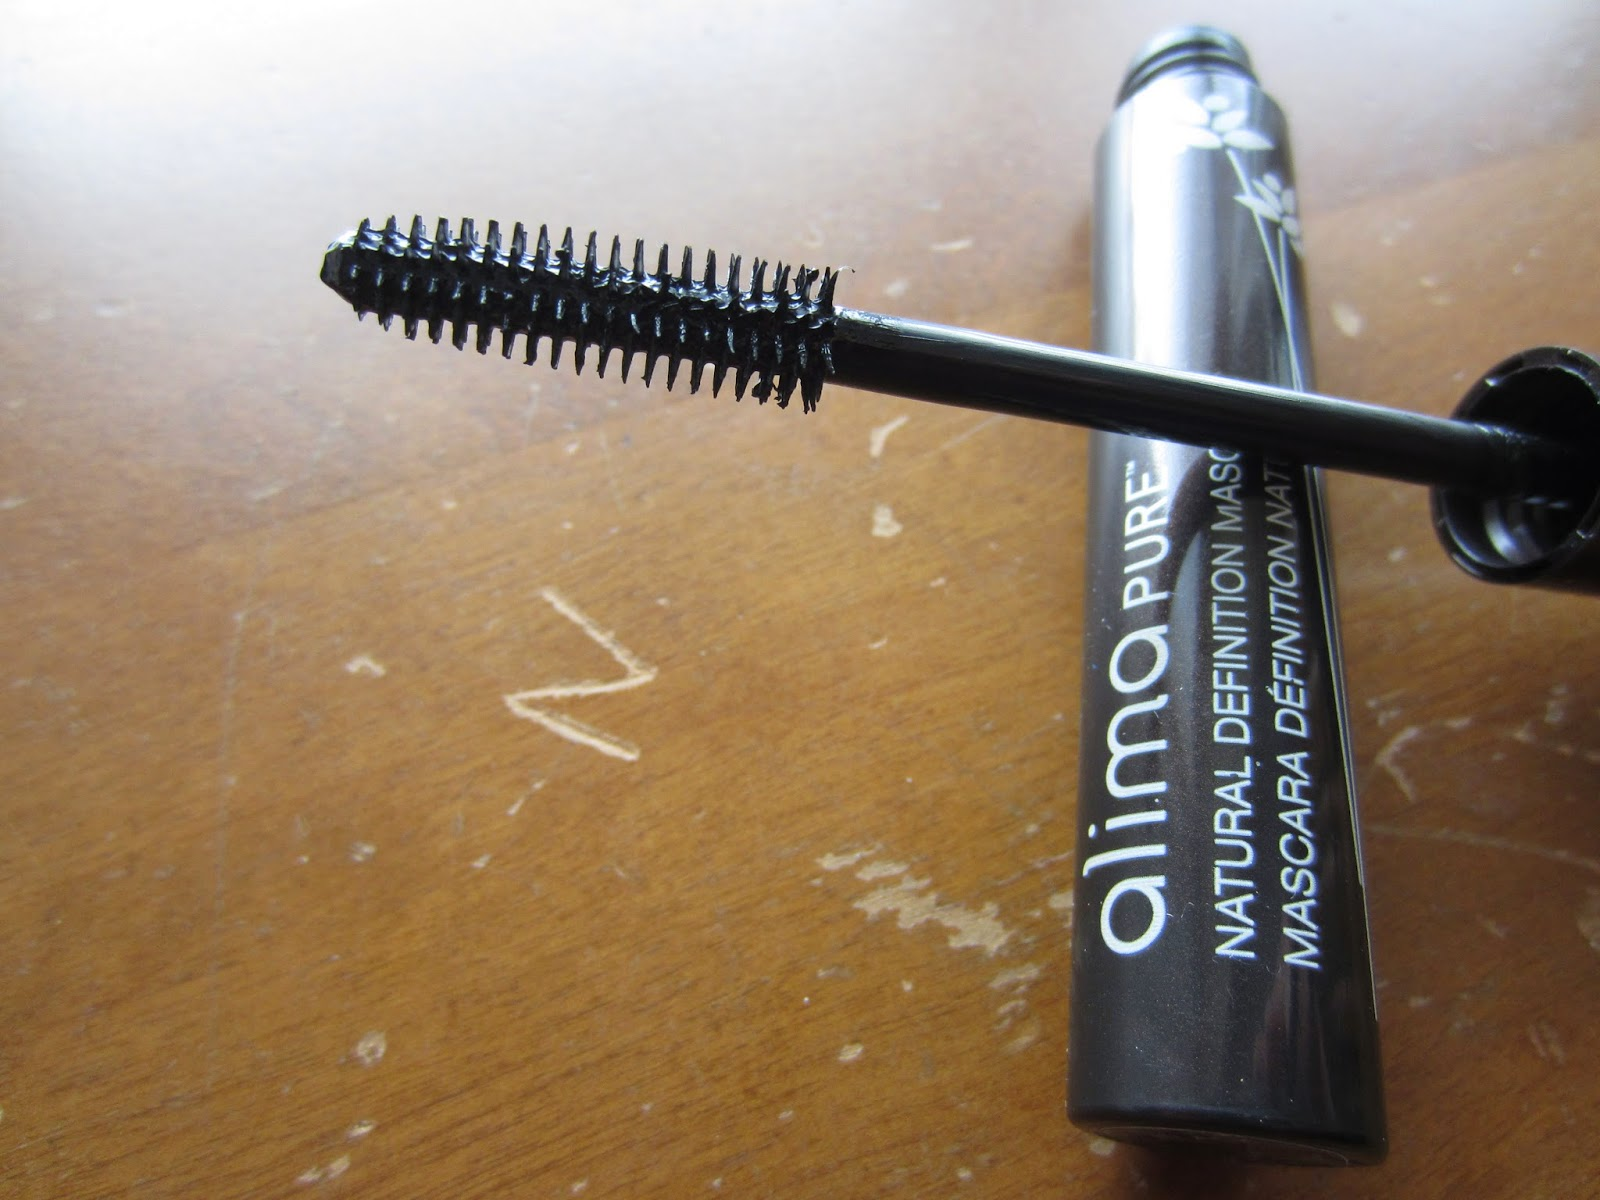 5611e70446c If you're looking for a quick, easy to apply, lengthening mascara that  looks incredibly natural, this is the one for you. If you prefer volume and  fullness, ...